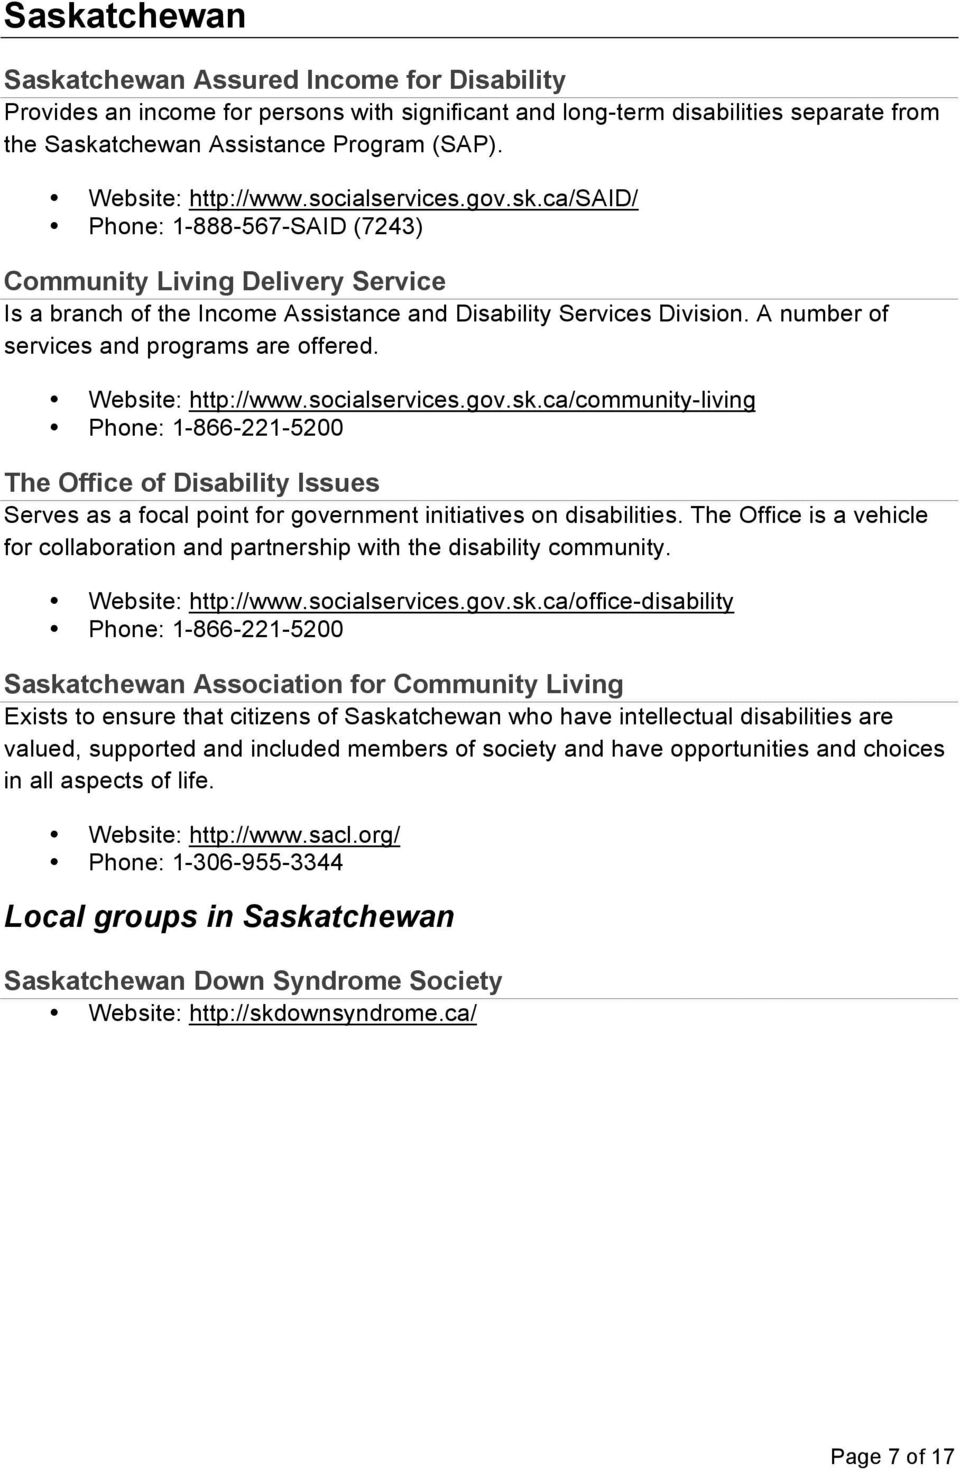 A number of services and programs are offered. Website: http://www.socialservices.gov.sk.